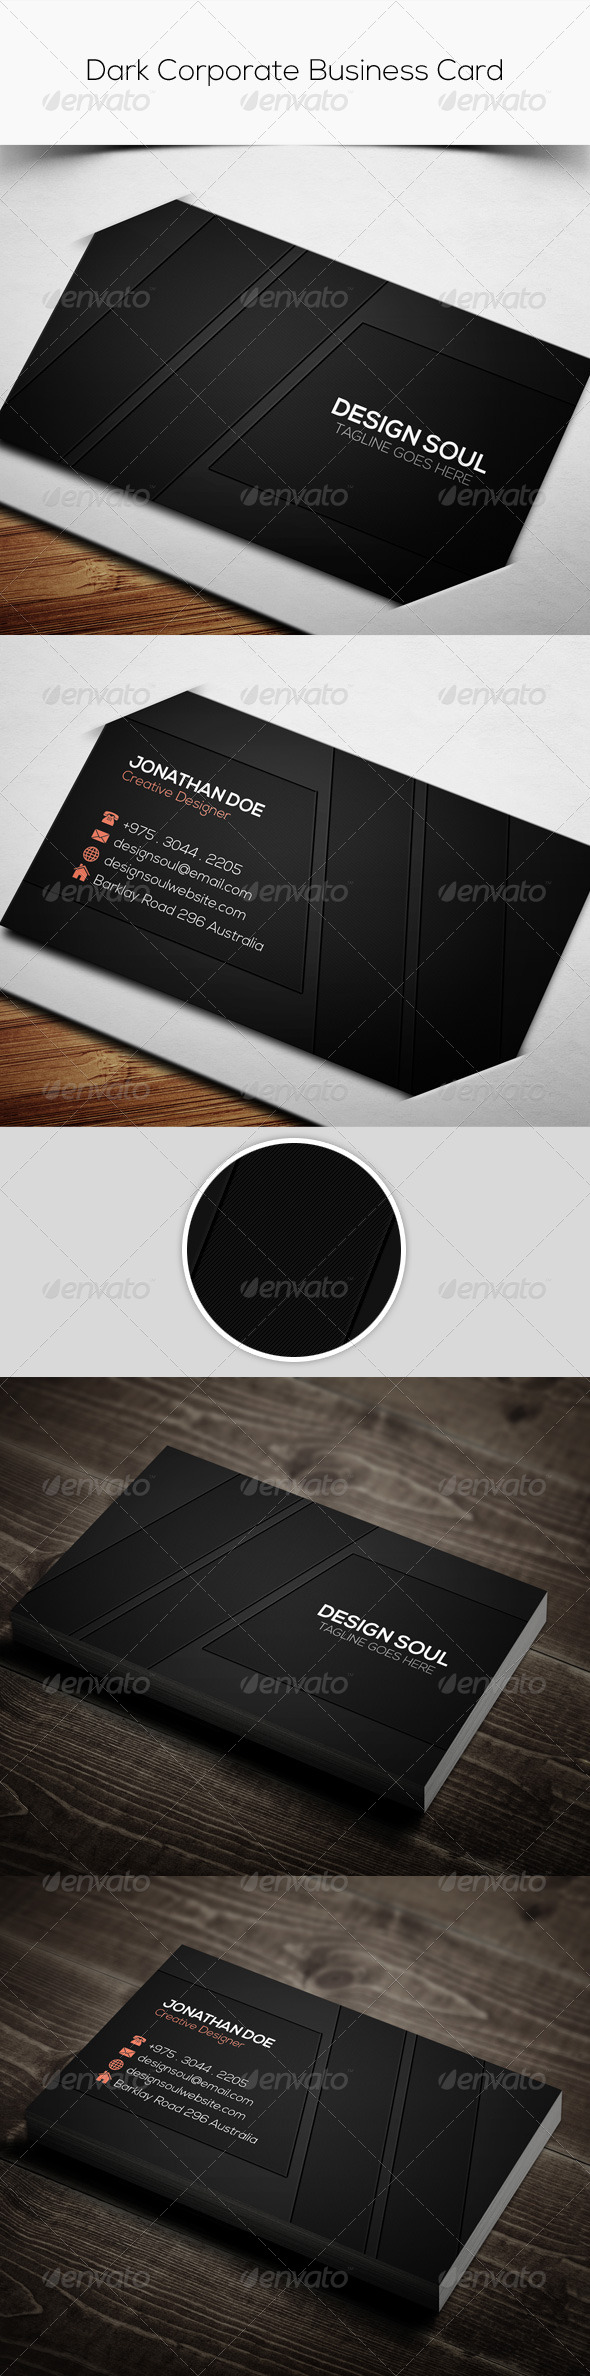 GraphicRiver Dark Corporate Business Card 7884391